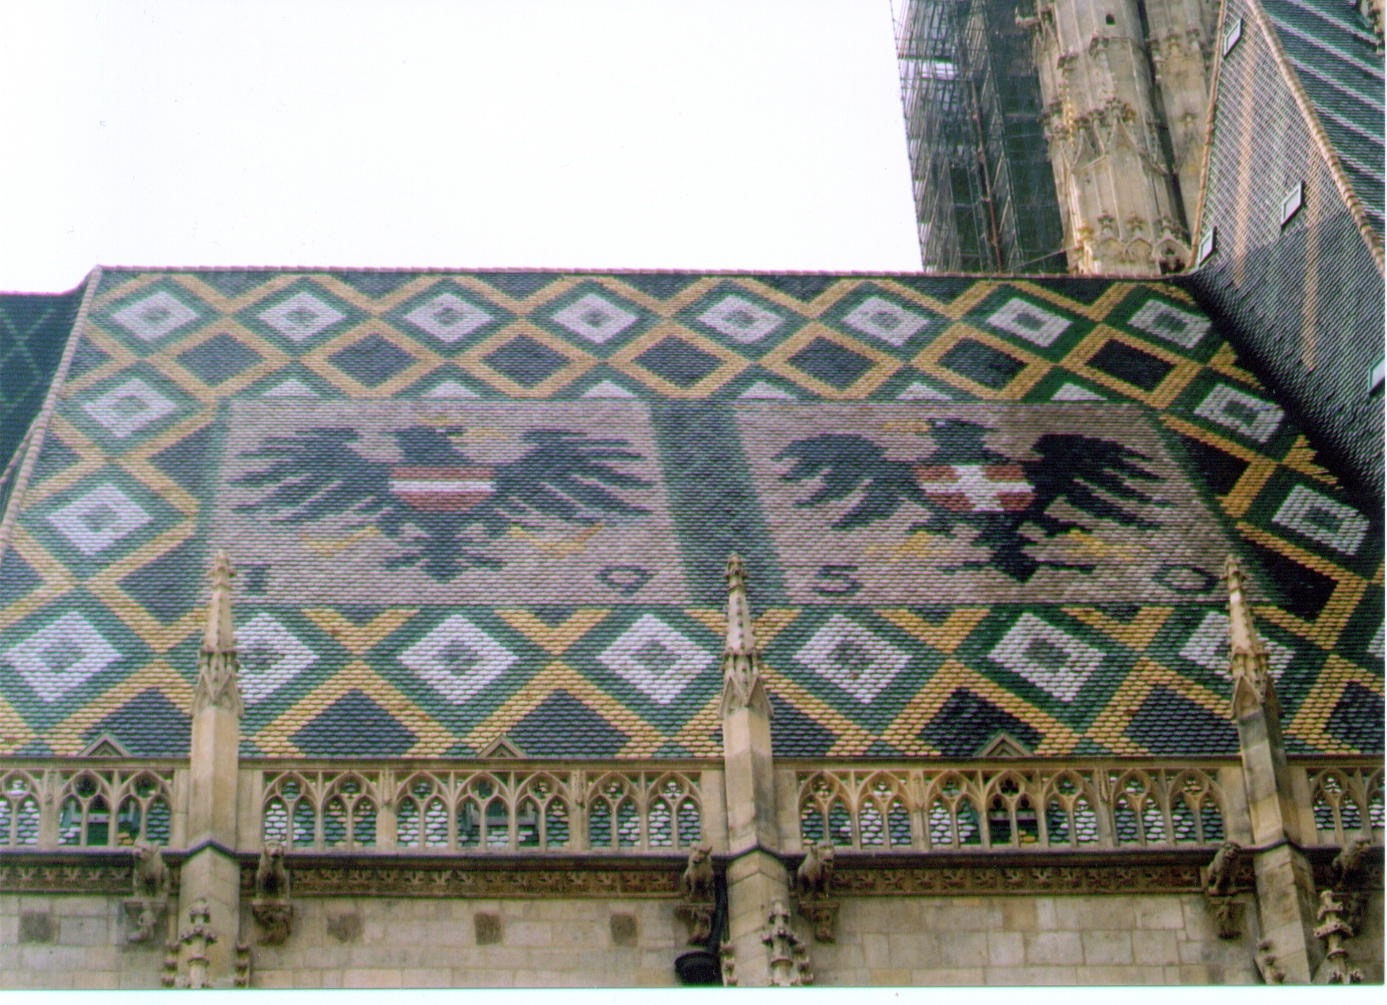 Image: Clearly the focus of the image is the roof tiling and the eagles. Area's to the top and...